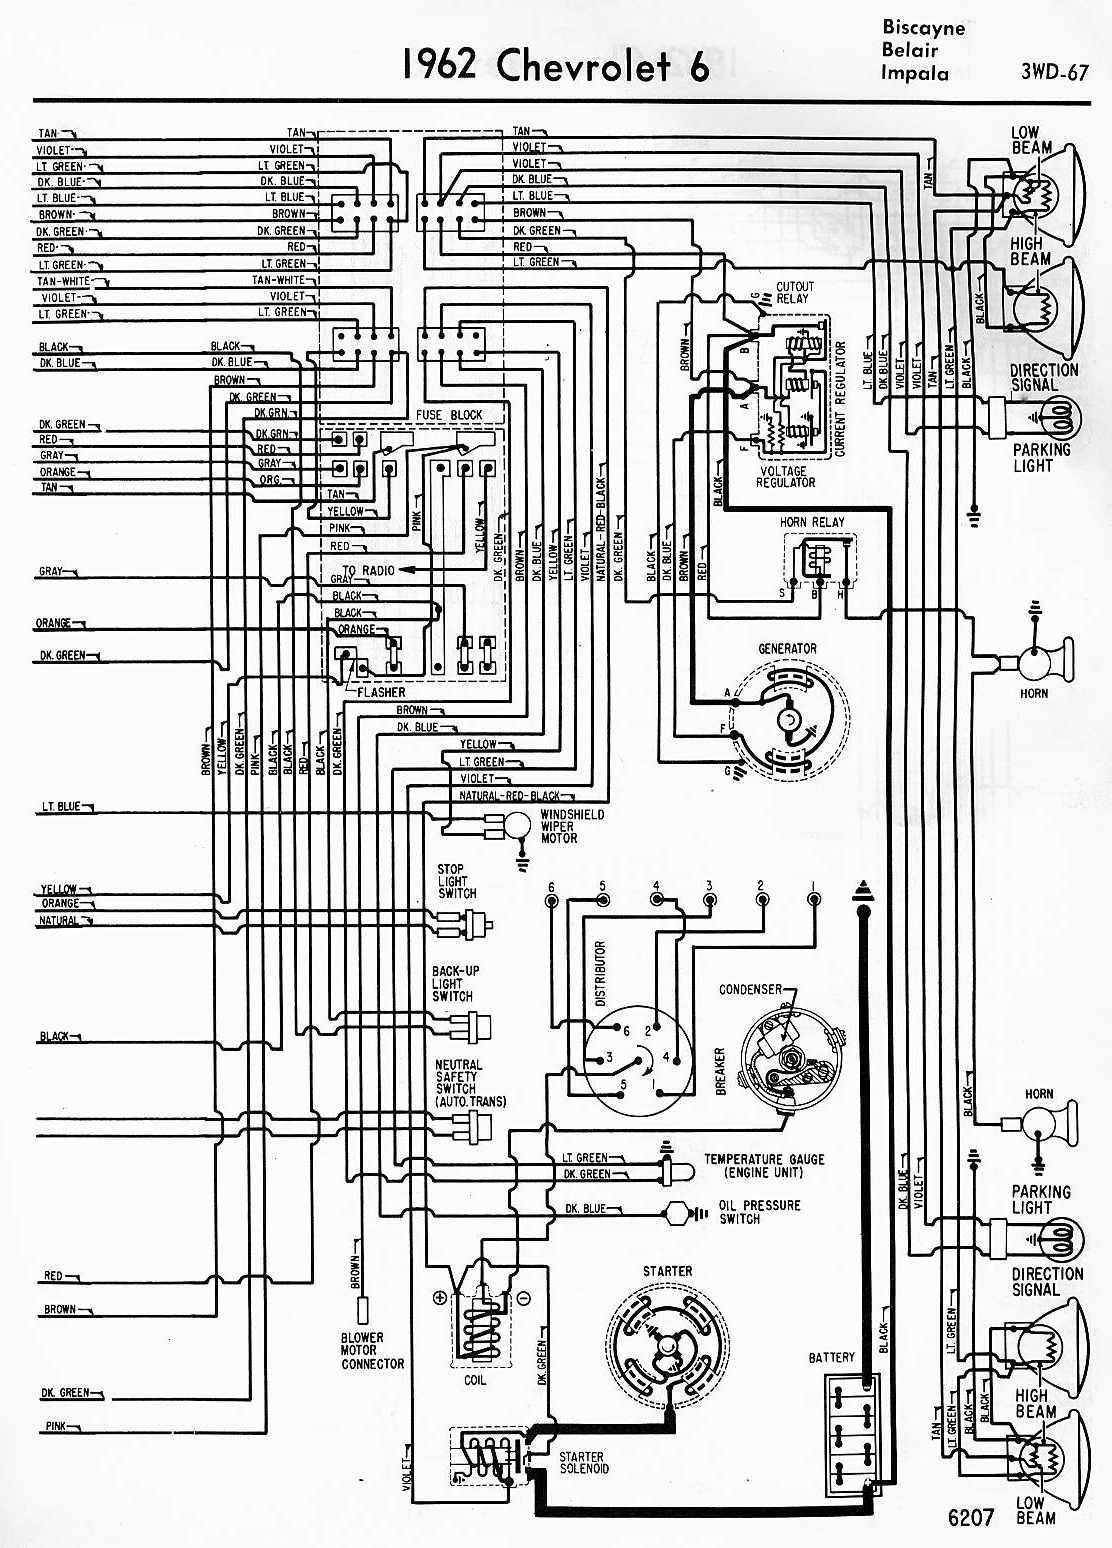 small resolution of 55 chevy belair wiring diagram free picture wiring diagram source 64 chevy wiring diagram 55 chevy belair wiring diagram free picture